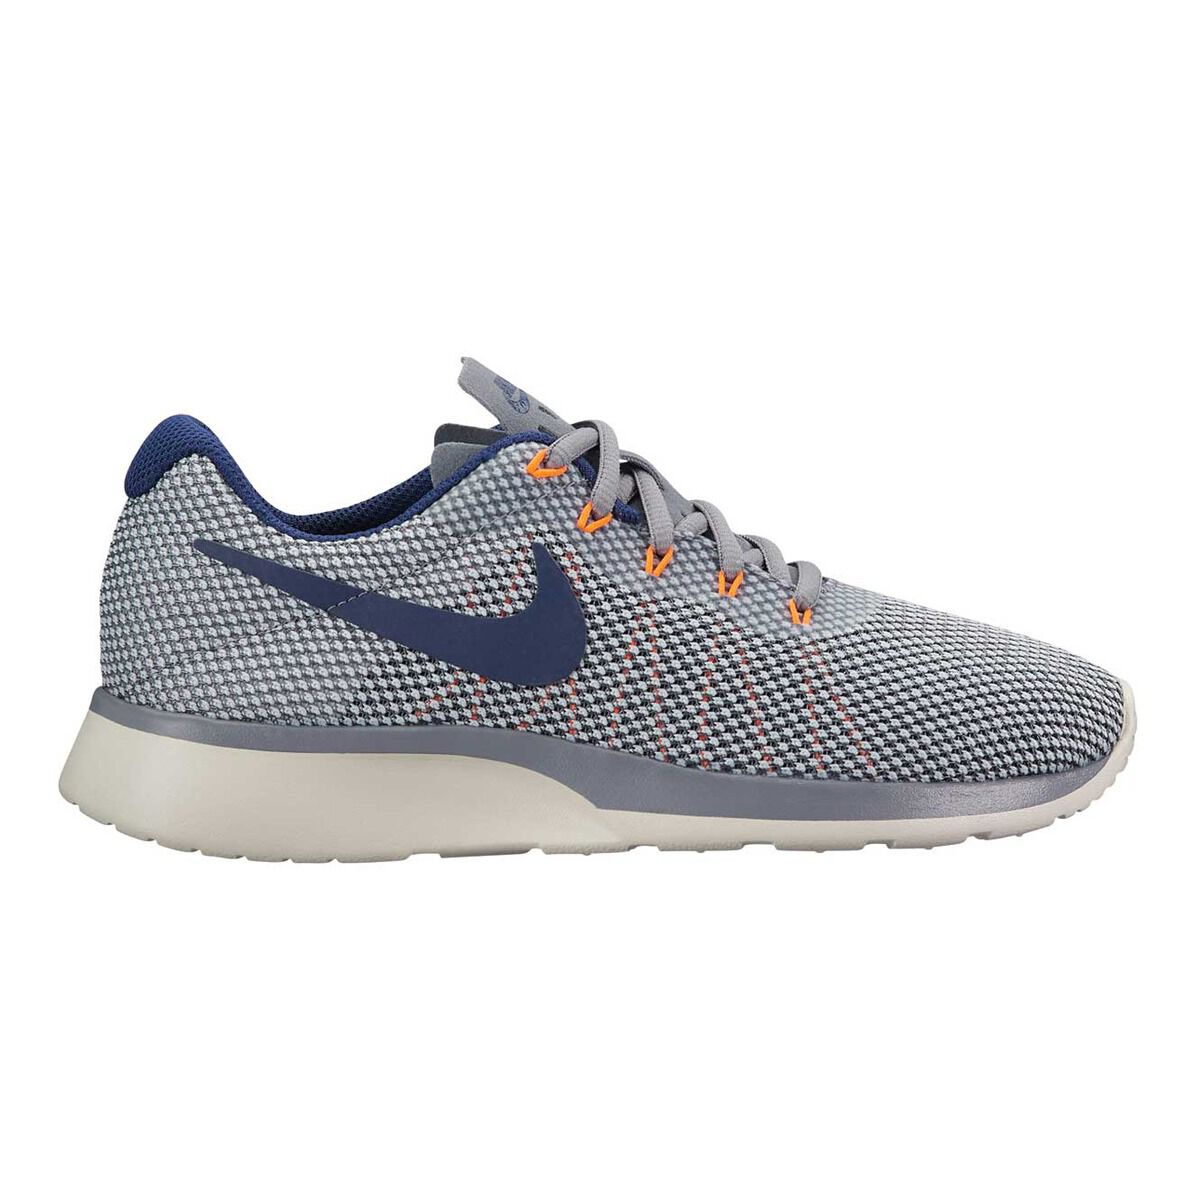 8be059f6b85 ... coupon code for nike tanjun racer womens casual shoes grey blue us 6  grey blue c5f17